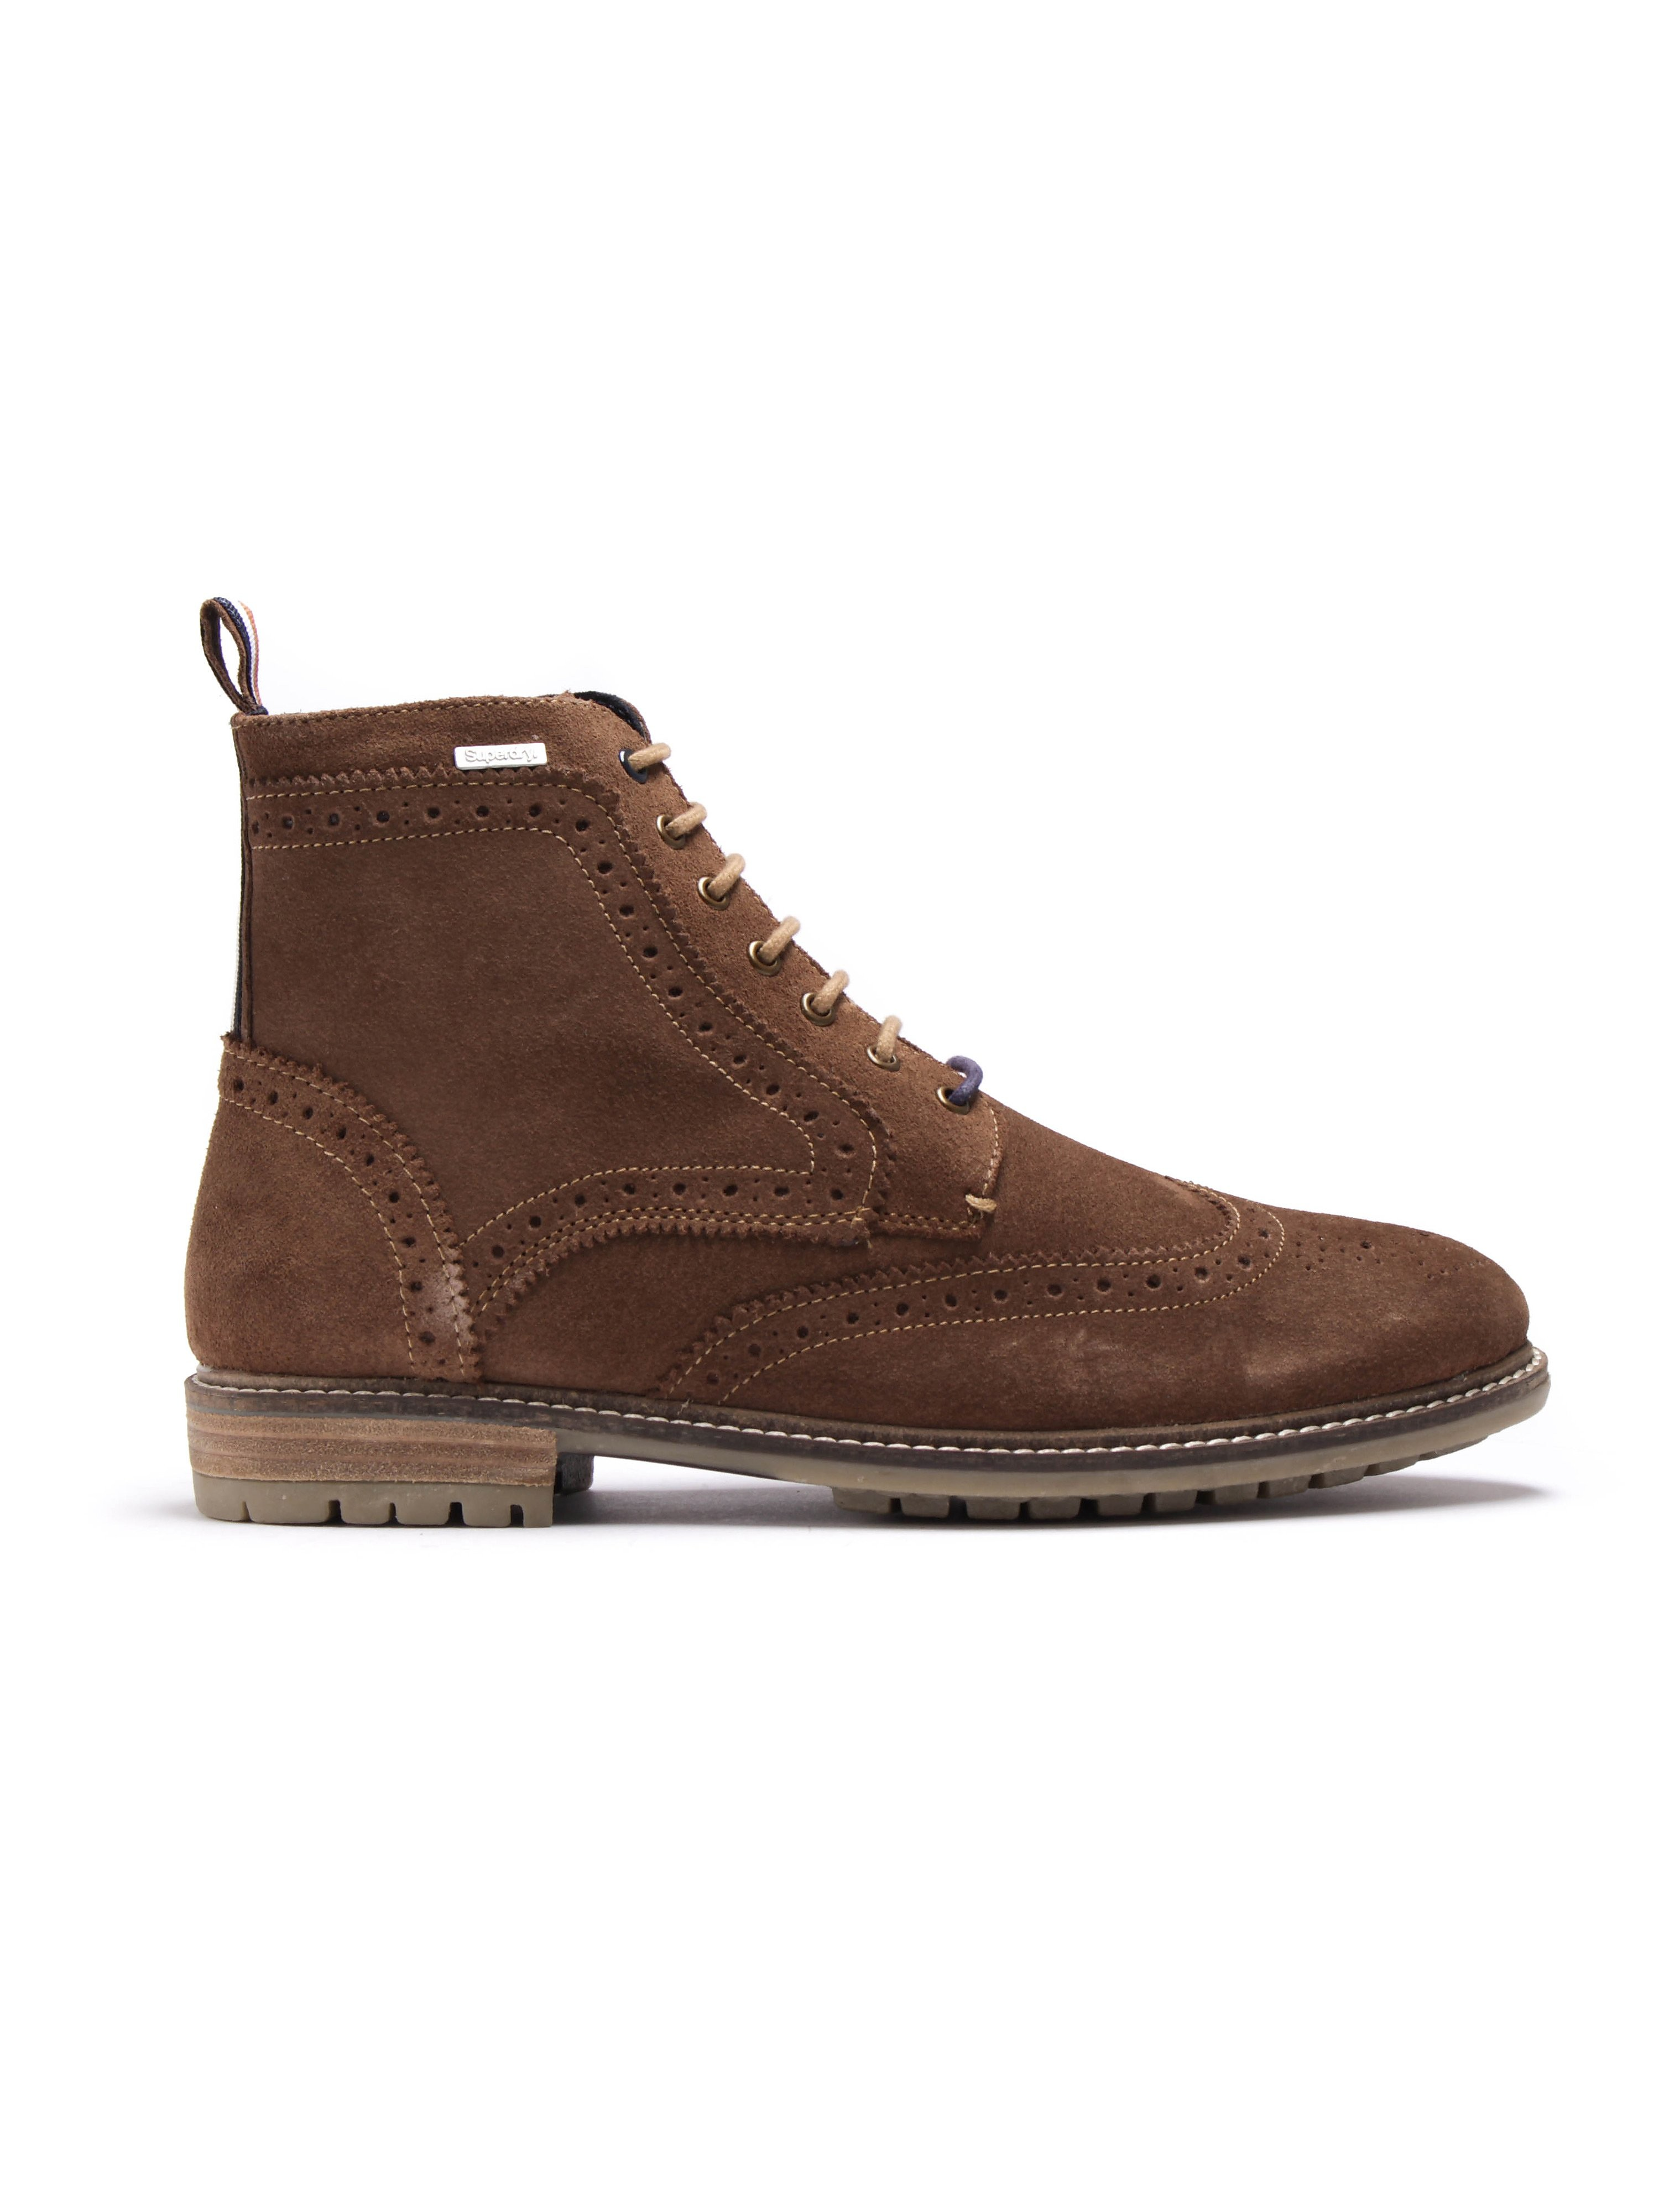 Superdry Brad Brogue Stamford Boot